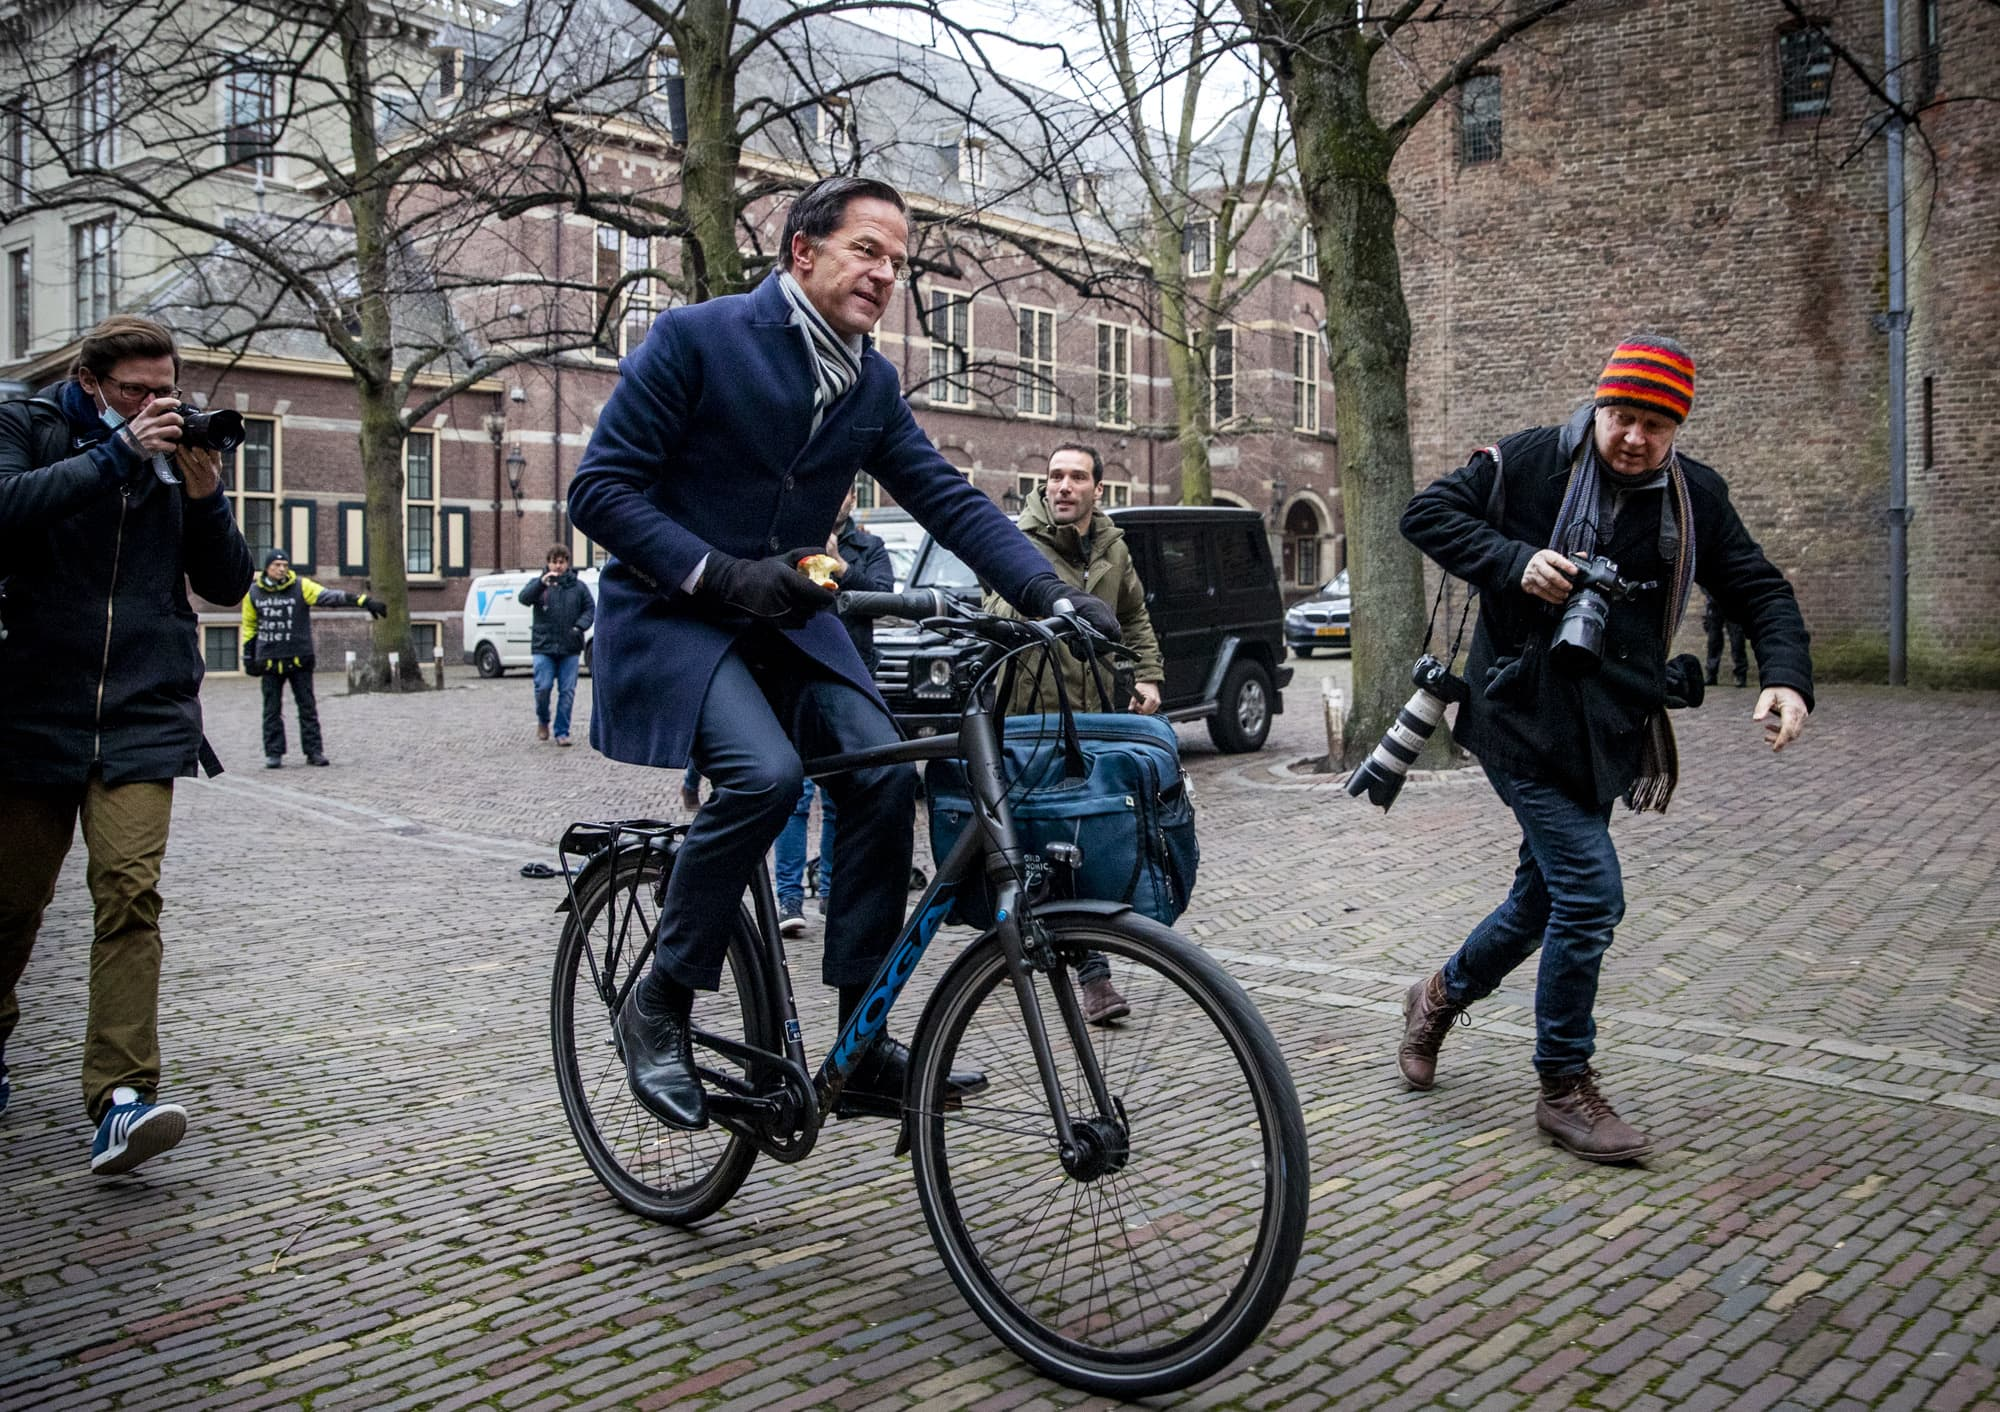 The Dutch government resigns after childcare benefits scandal